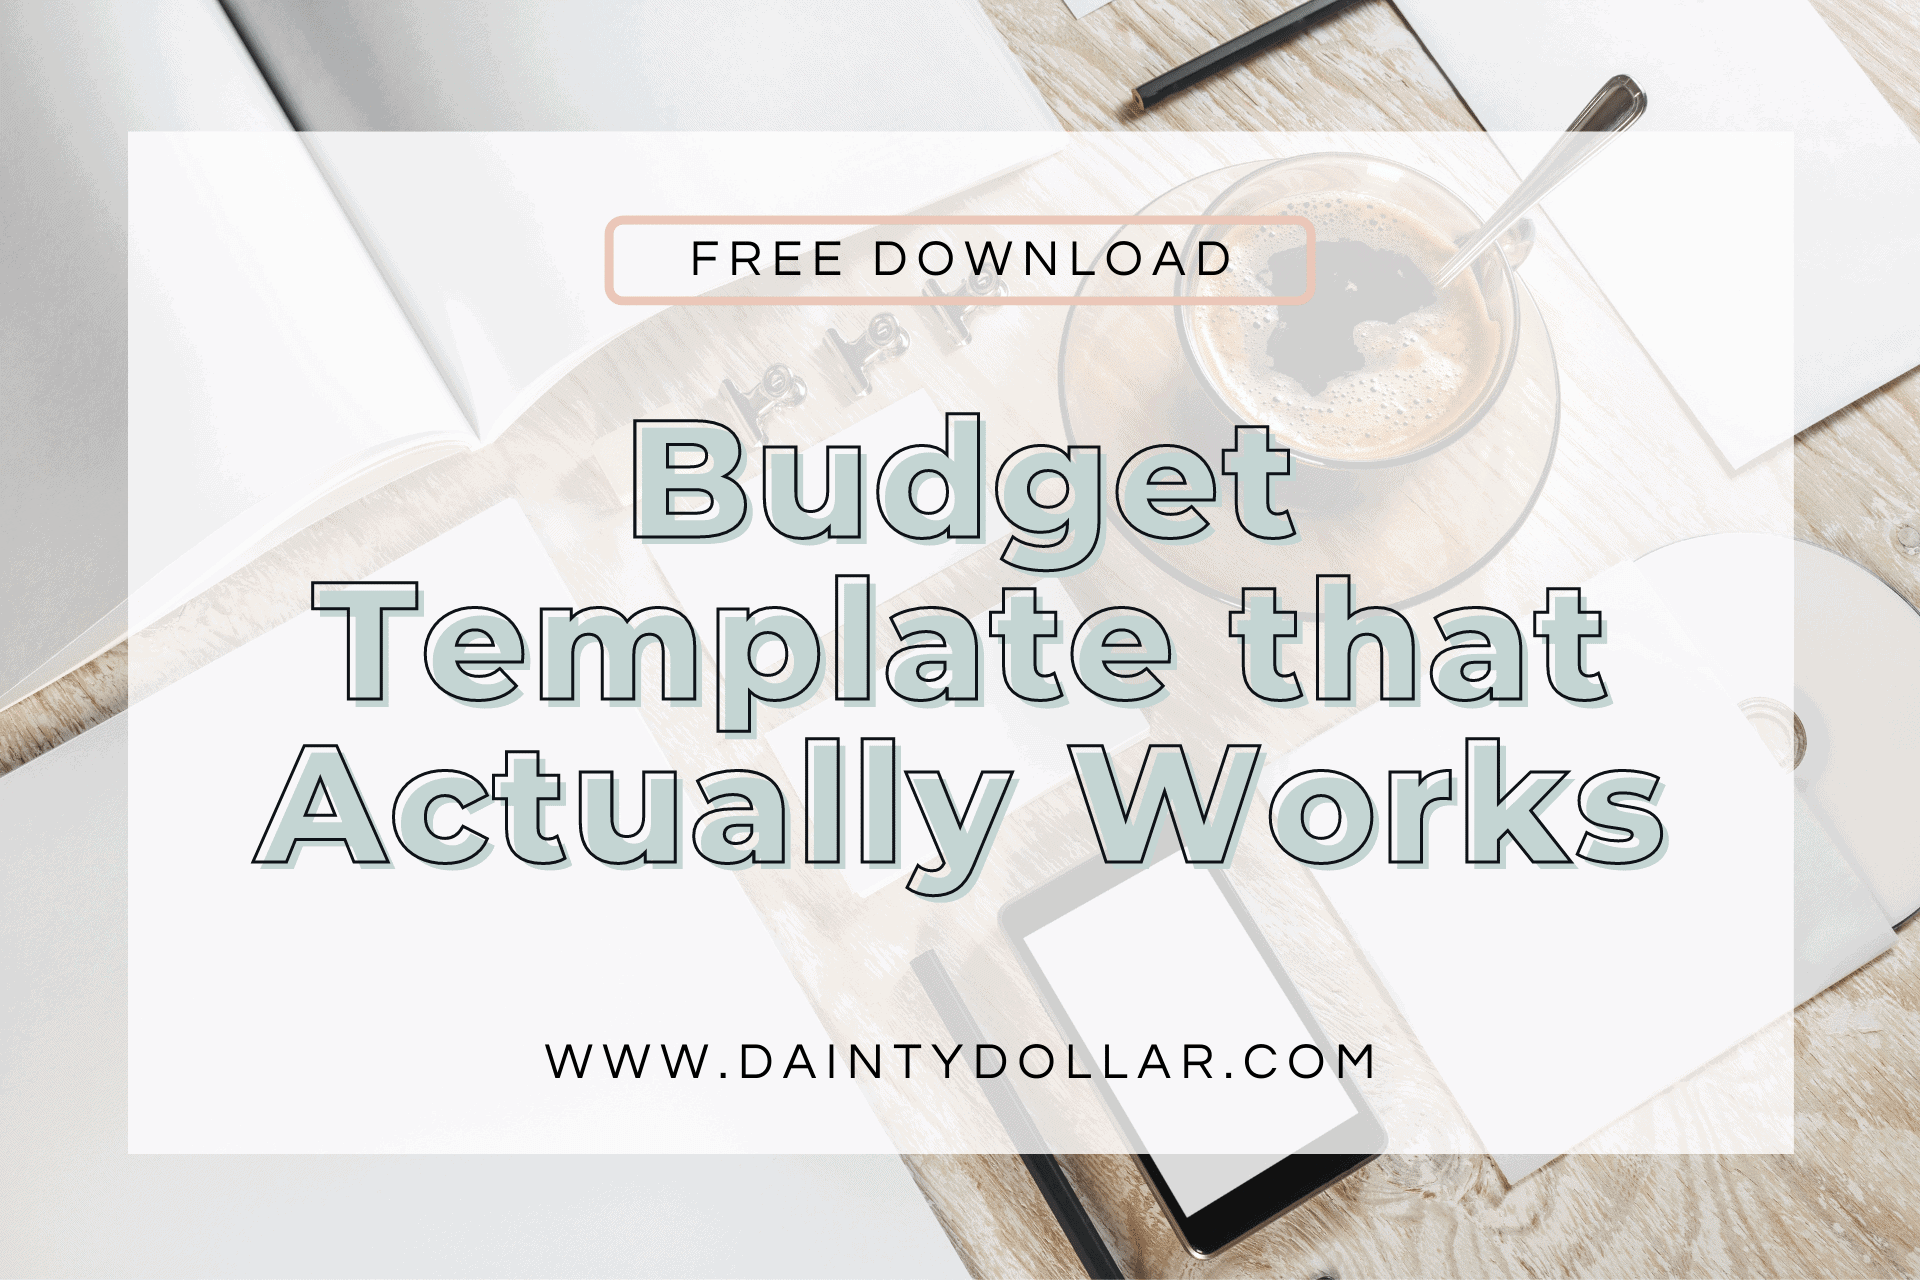 Budget Template That Actually Works How I Set Up My Budget - Dainty Dollar